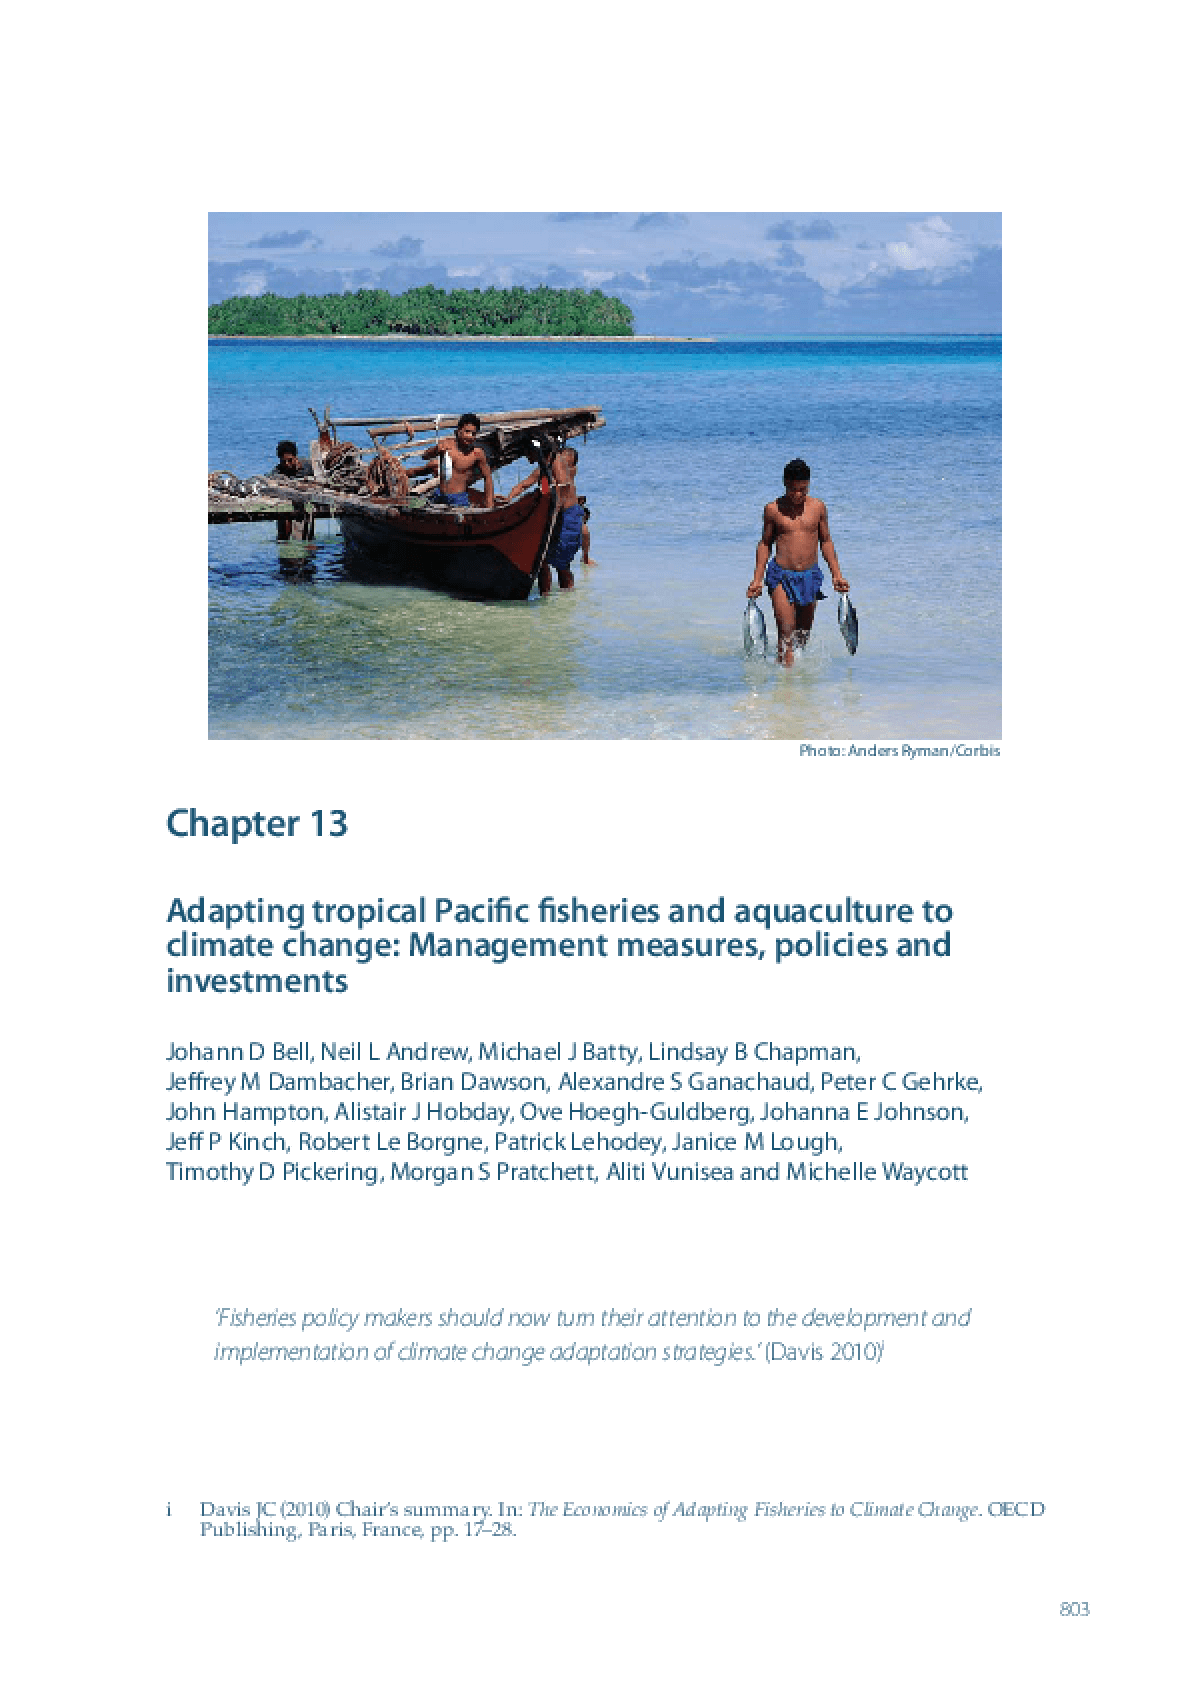 Adapting Tropical Pacific Fisheries and Aquaculture to Climate Change: Management Measures, Policies and Investments